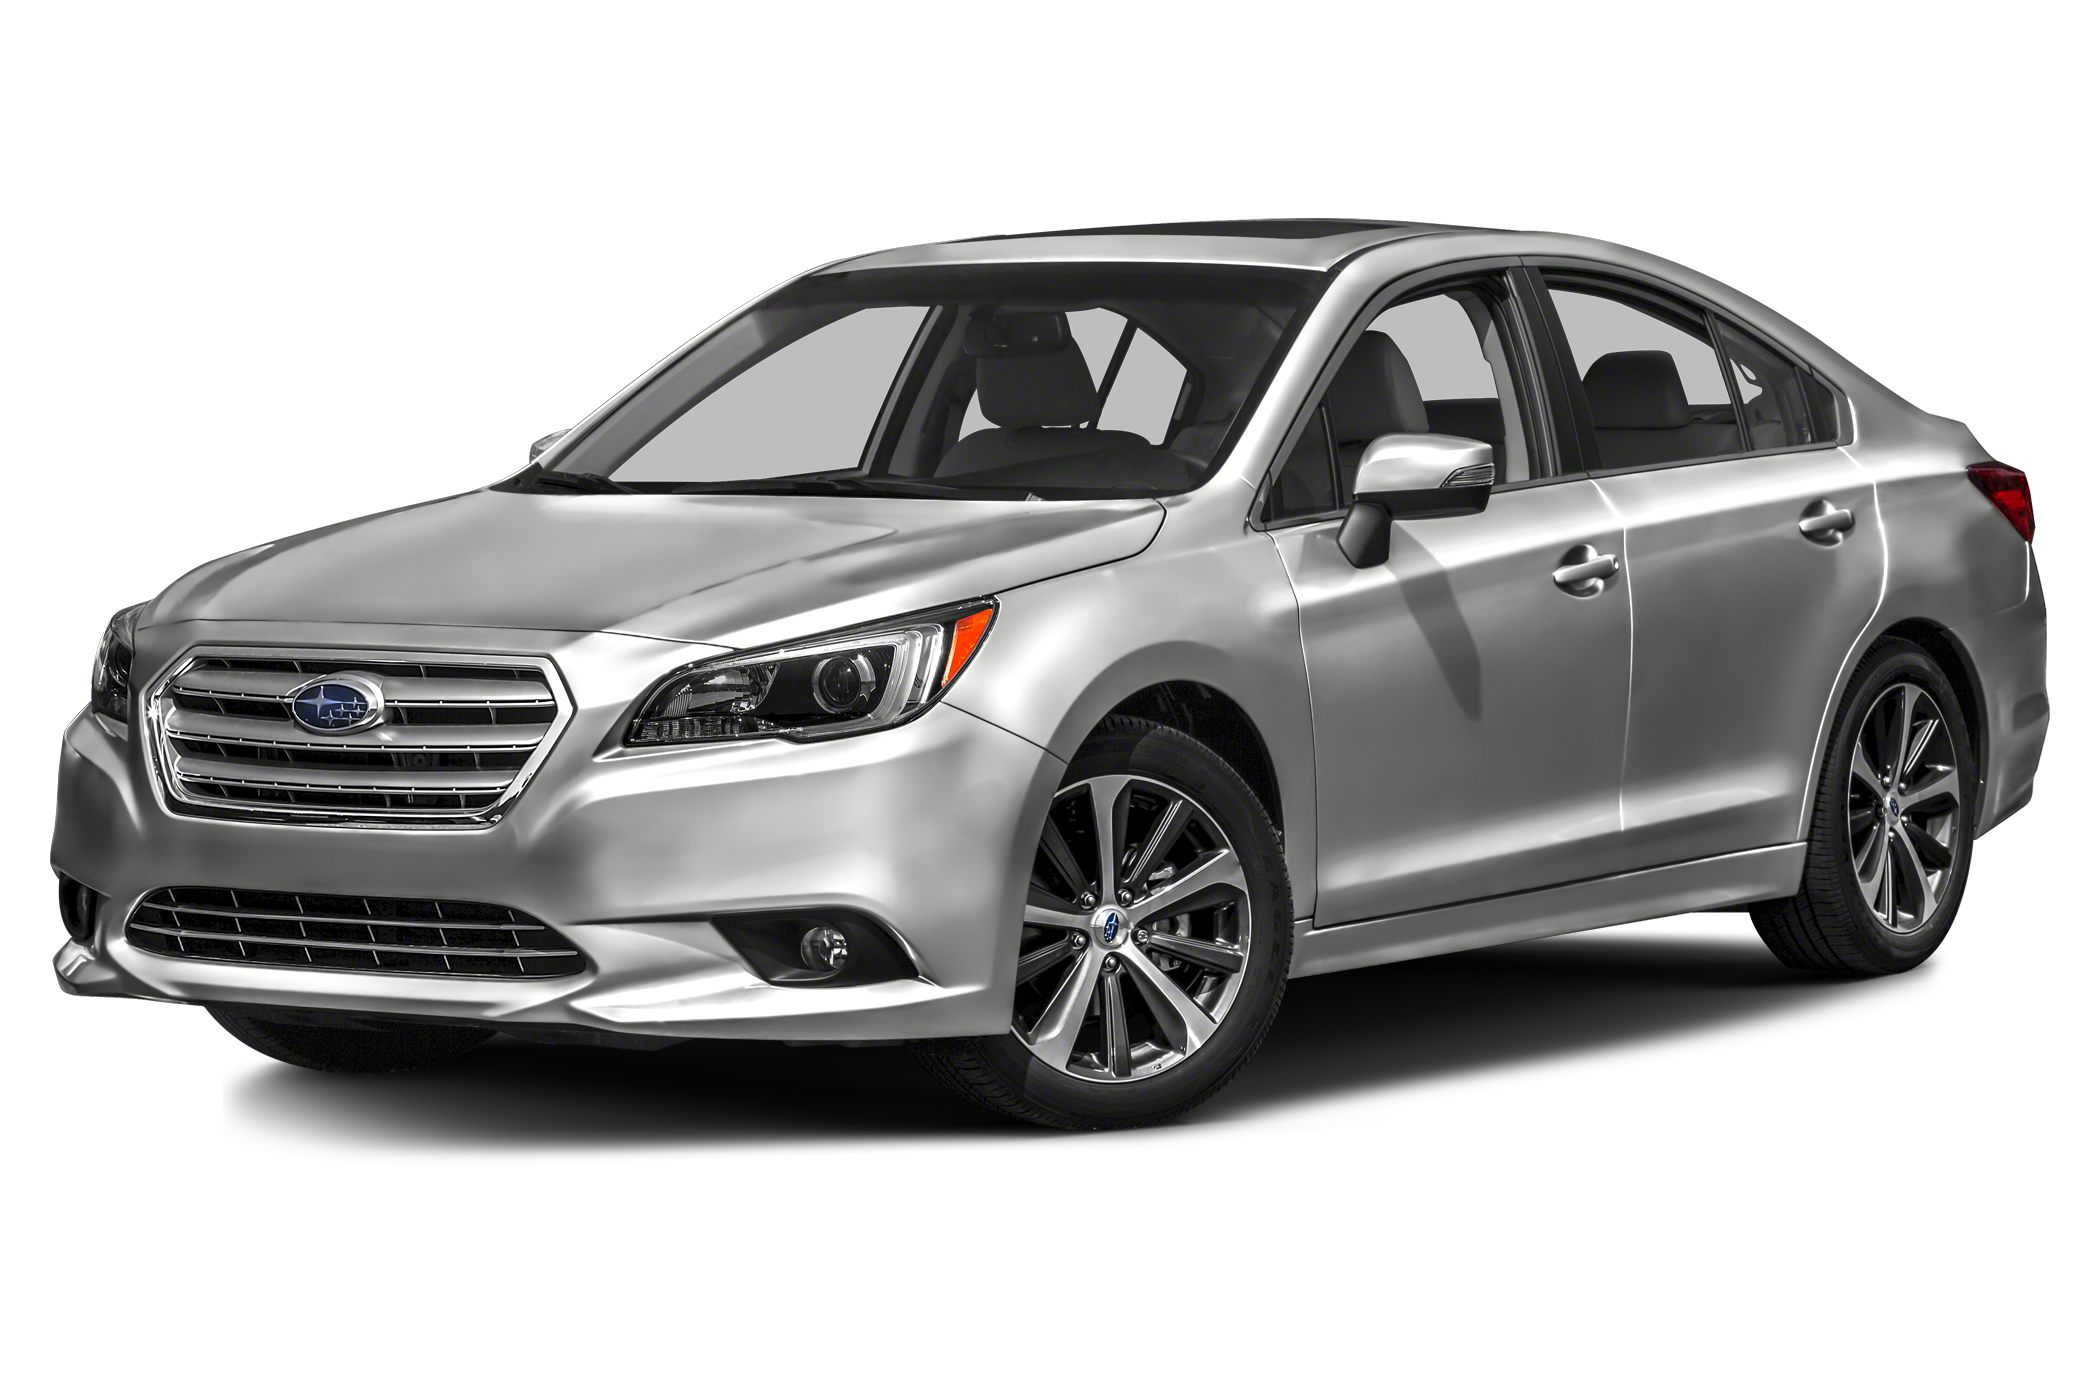 2015 Subaru Legacy 25i Limited FUEL EFFICIENT 36 MPG Hwy26 MPG City GREAT MILES 22156 Heated